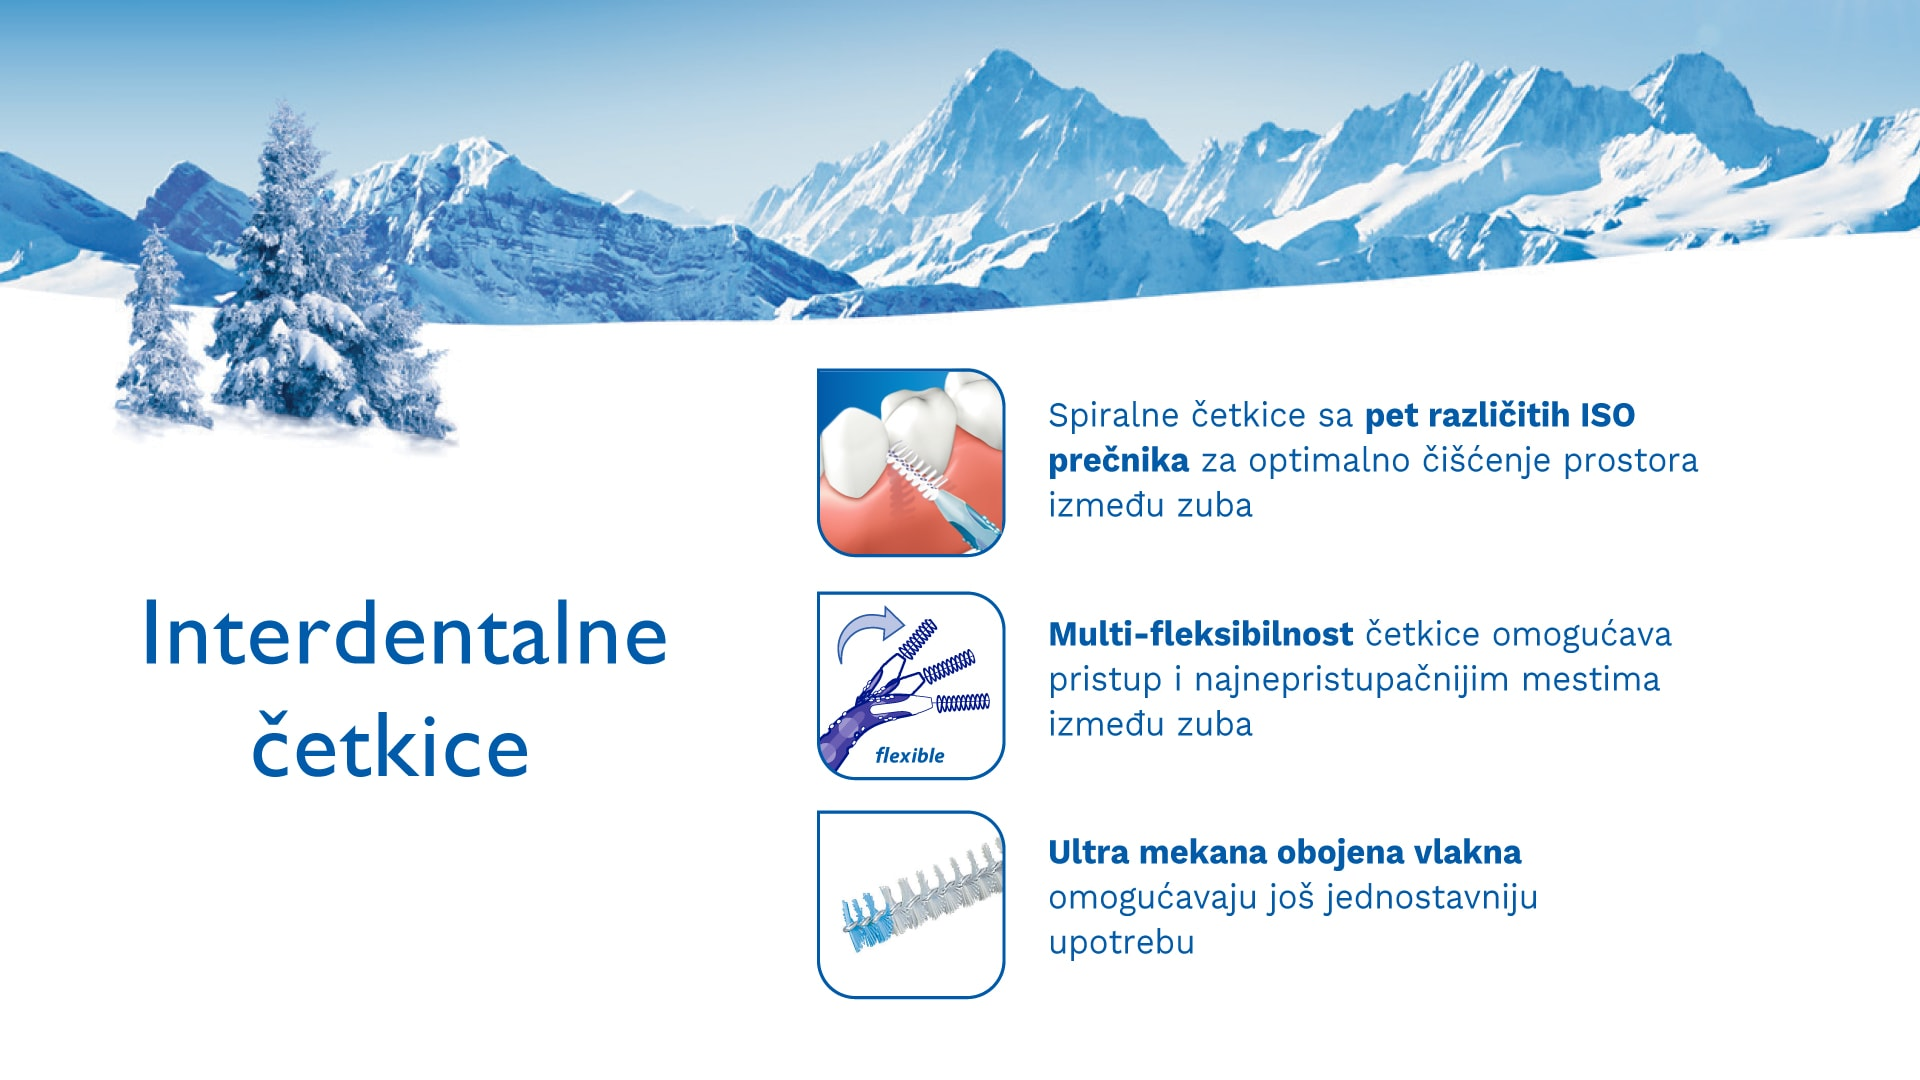 Interdentalne četkice za zube TRISA Interdental Brushes